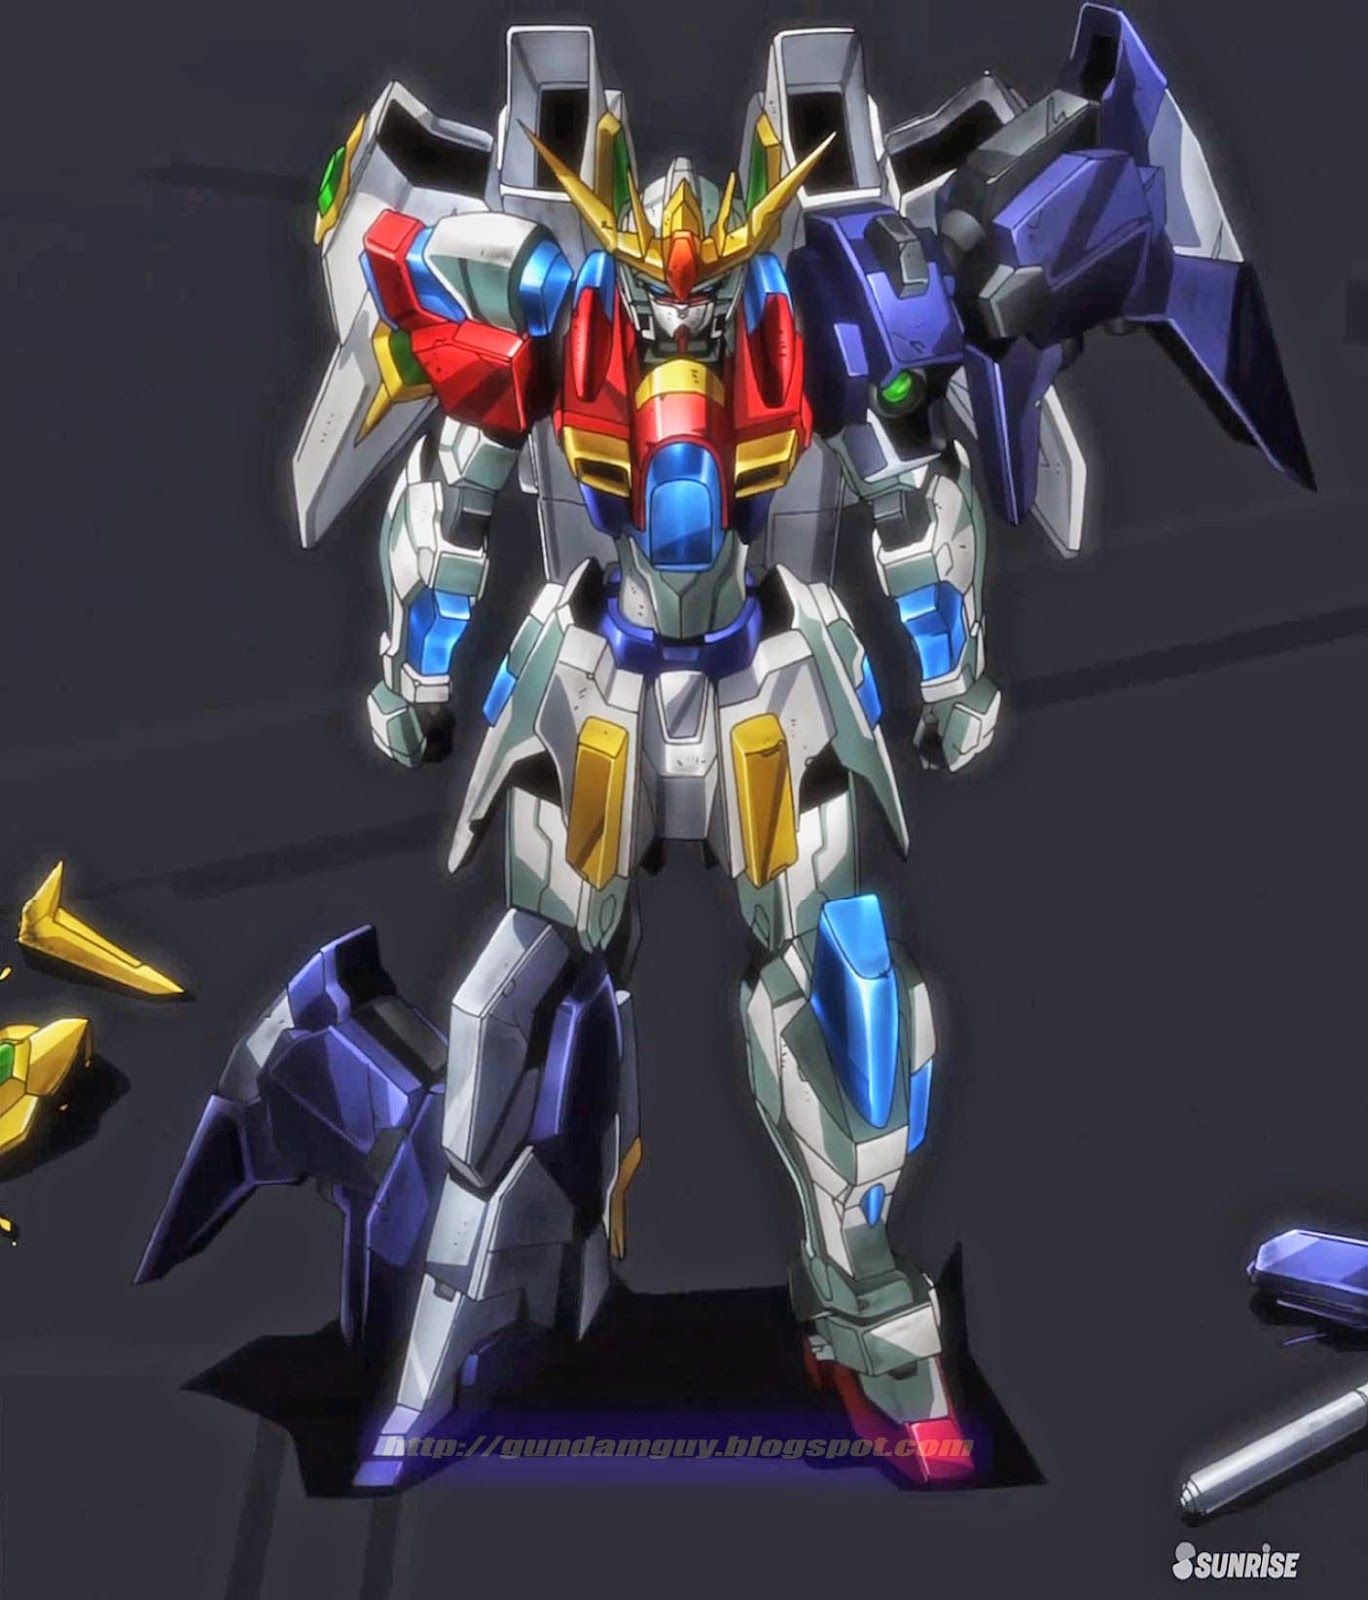 Try Burning Gundam + Lightning Gundam + Winning Gundam